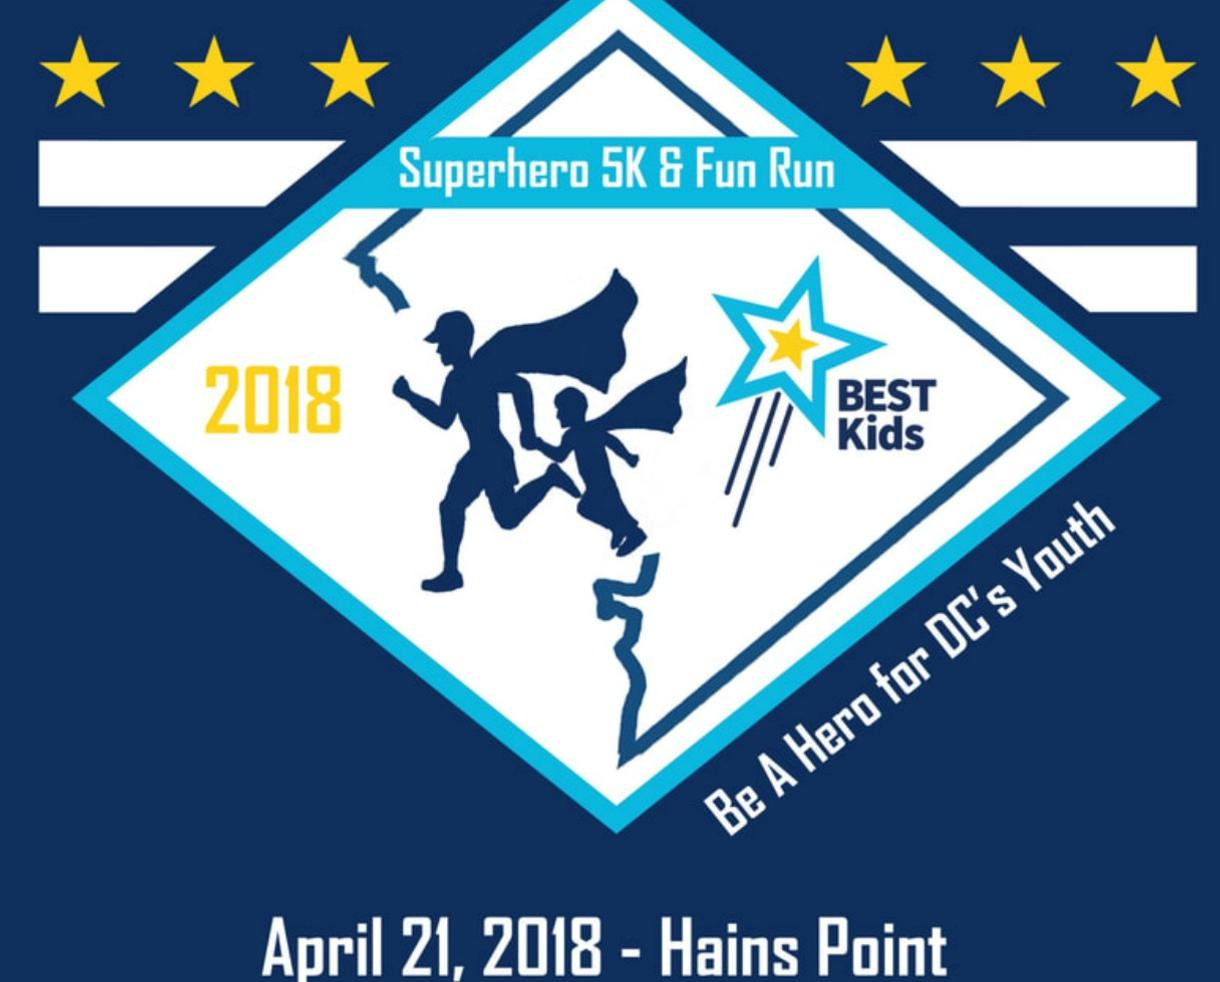 Deal BEST Kids Superhero 5K and Fun Run at Hains Point in East